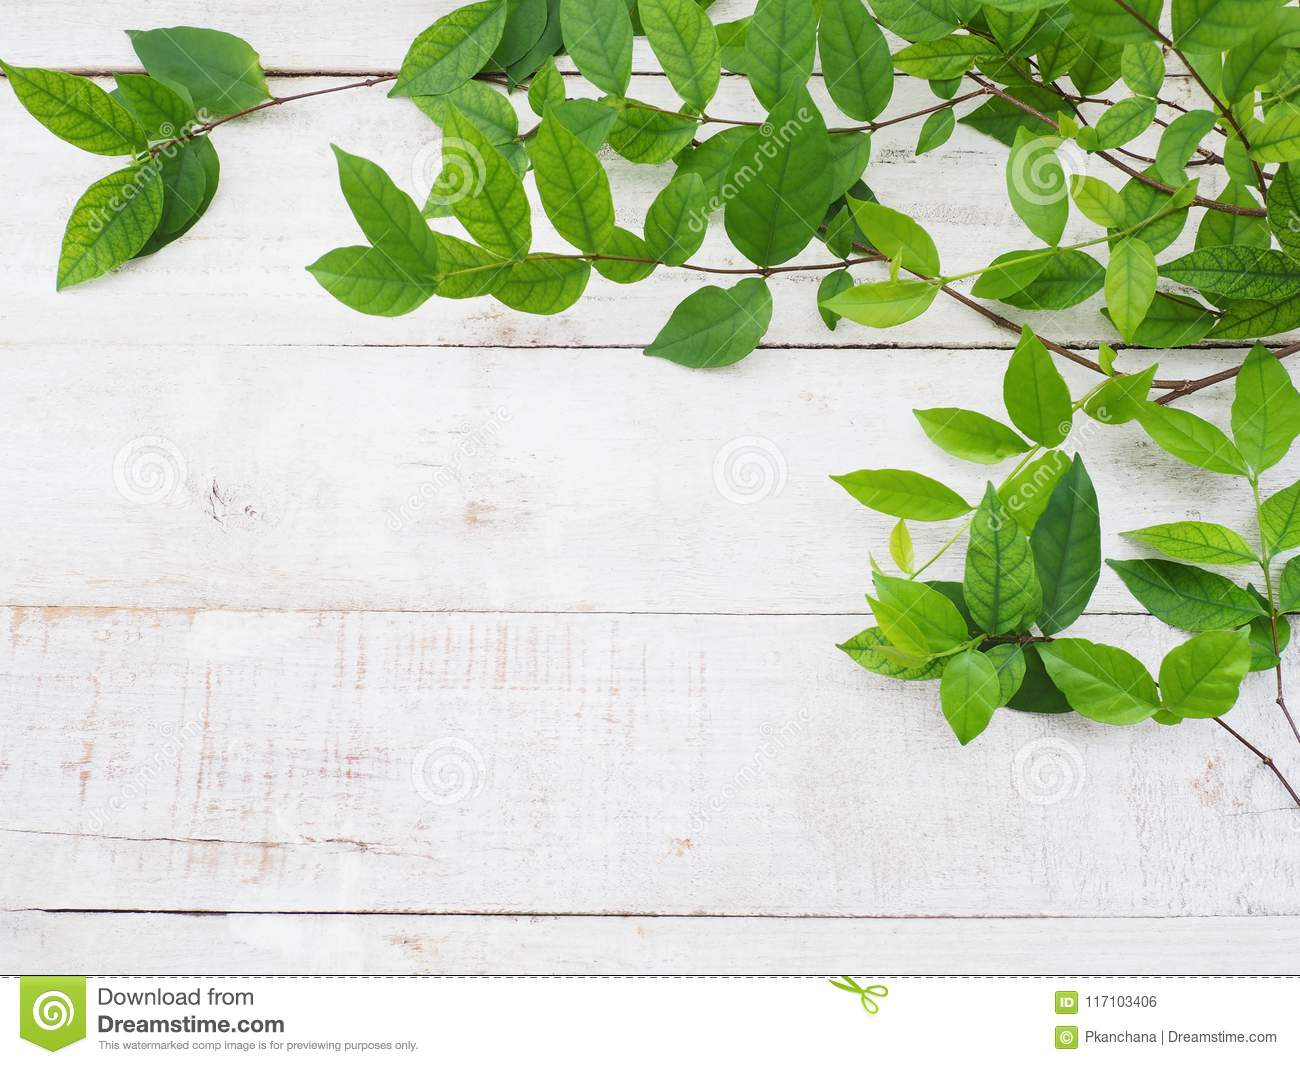 Creeper Plant Green Leaves On White Vintage Wood Stock Photo Image Of Natural Border 117103406